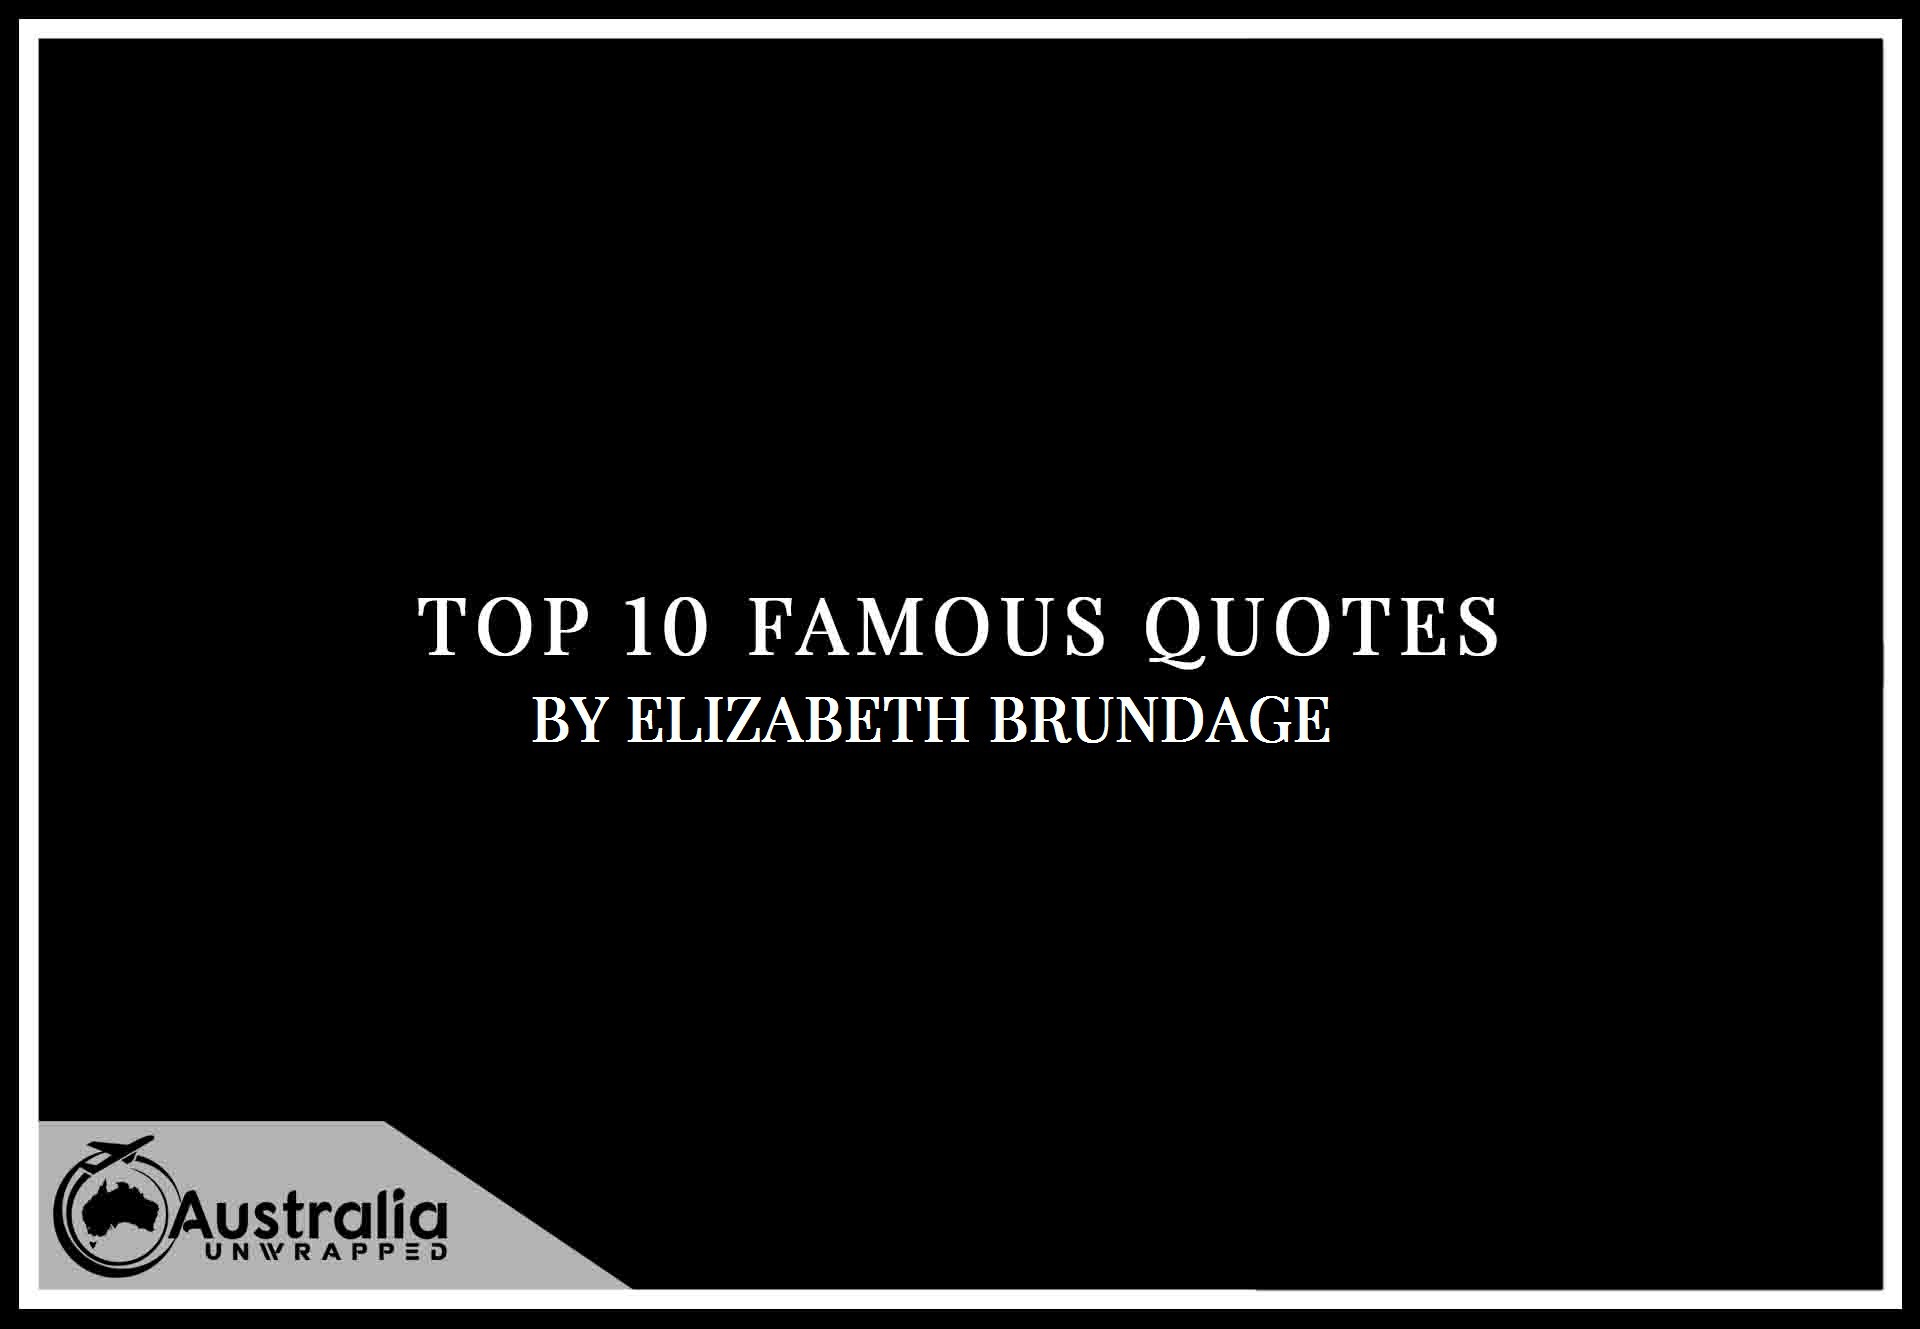 Elizabeth Brundage's Top 10 Popular and Famous Quotes